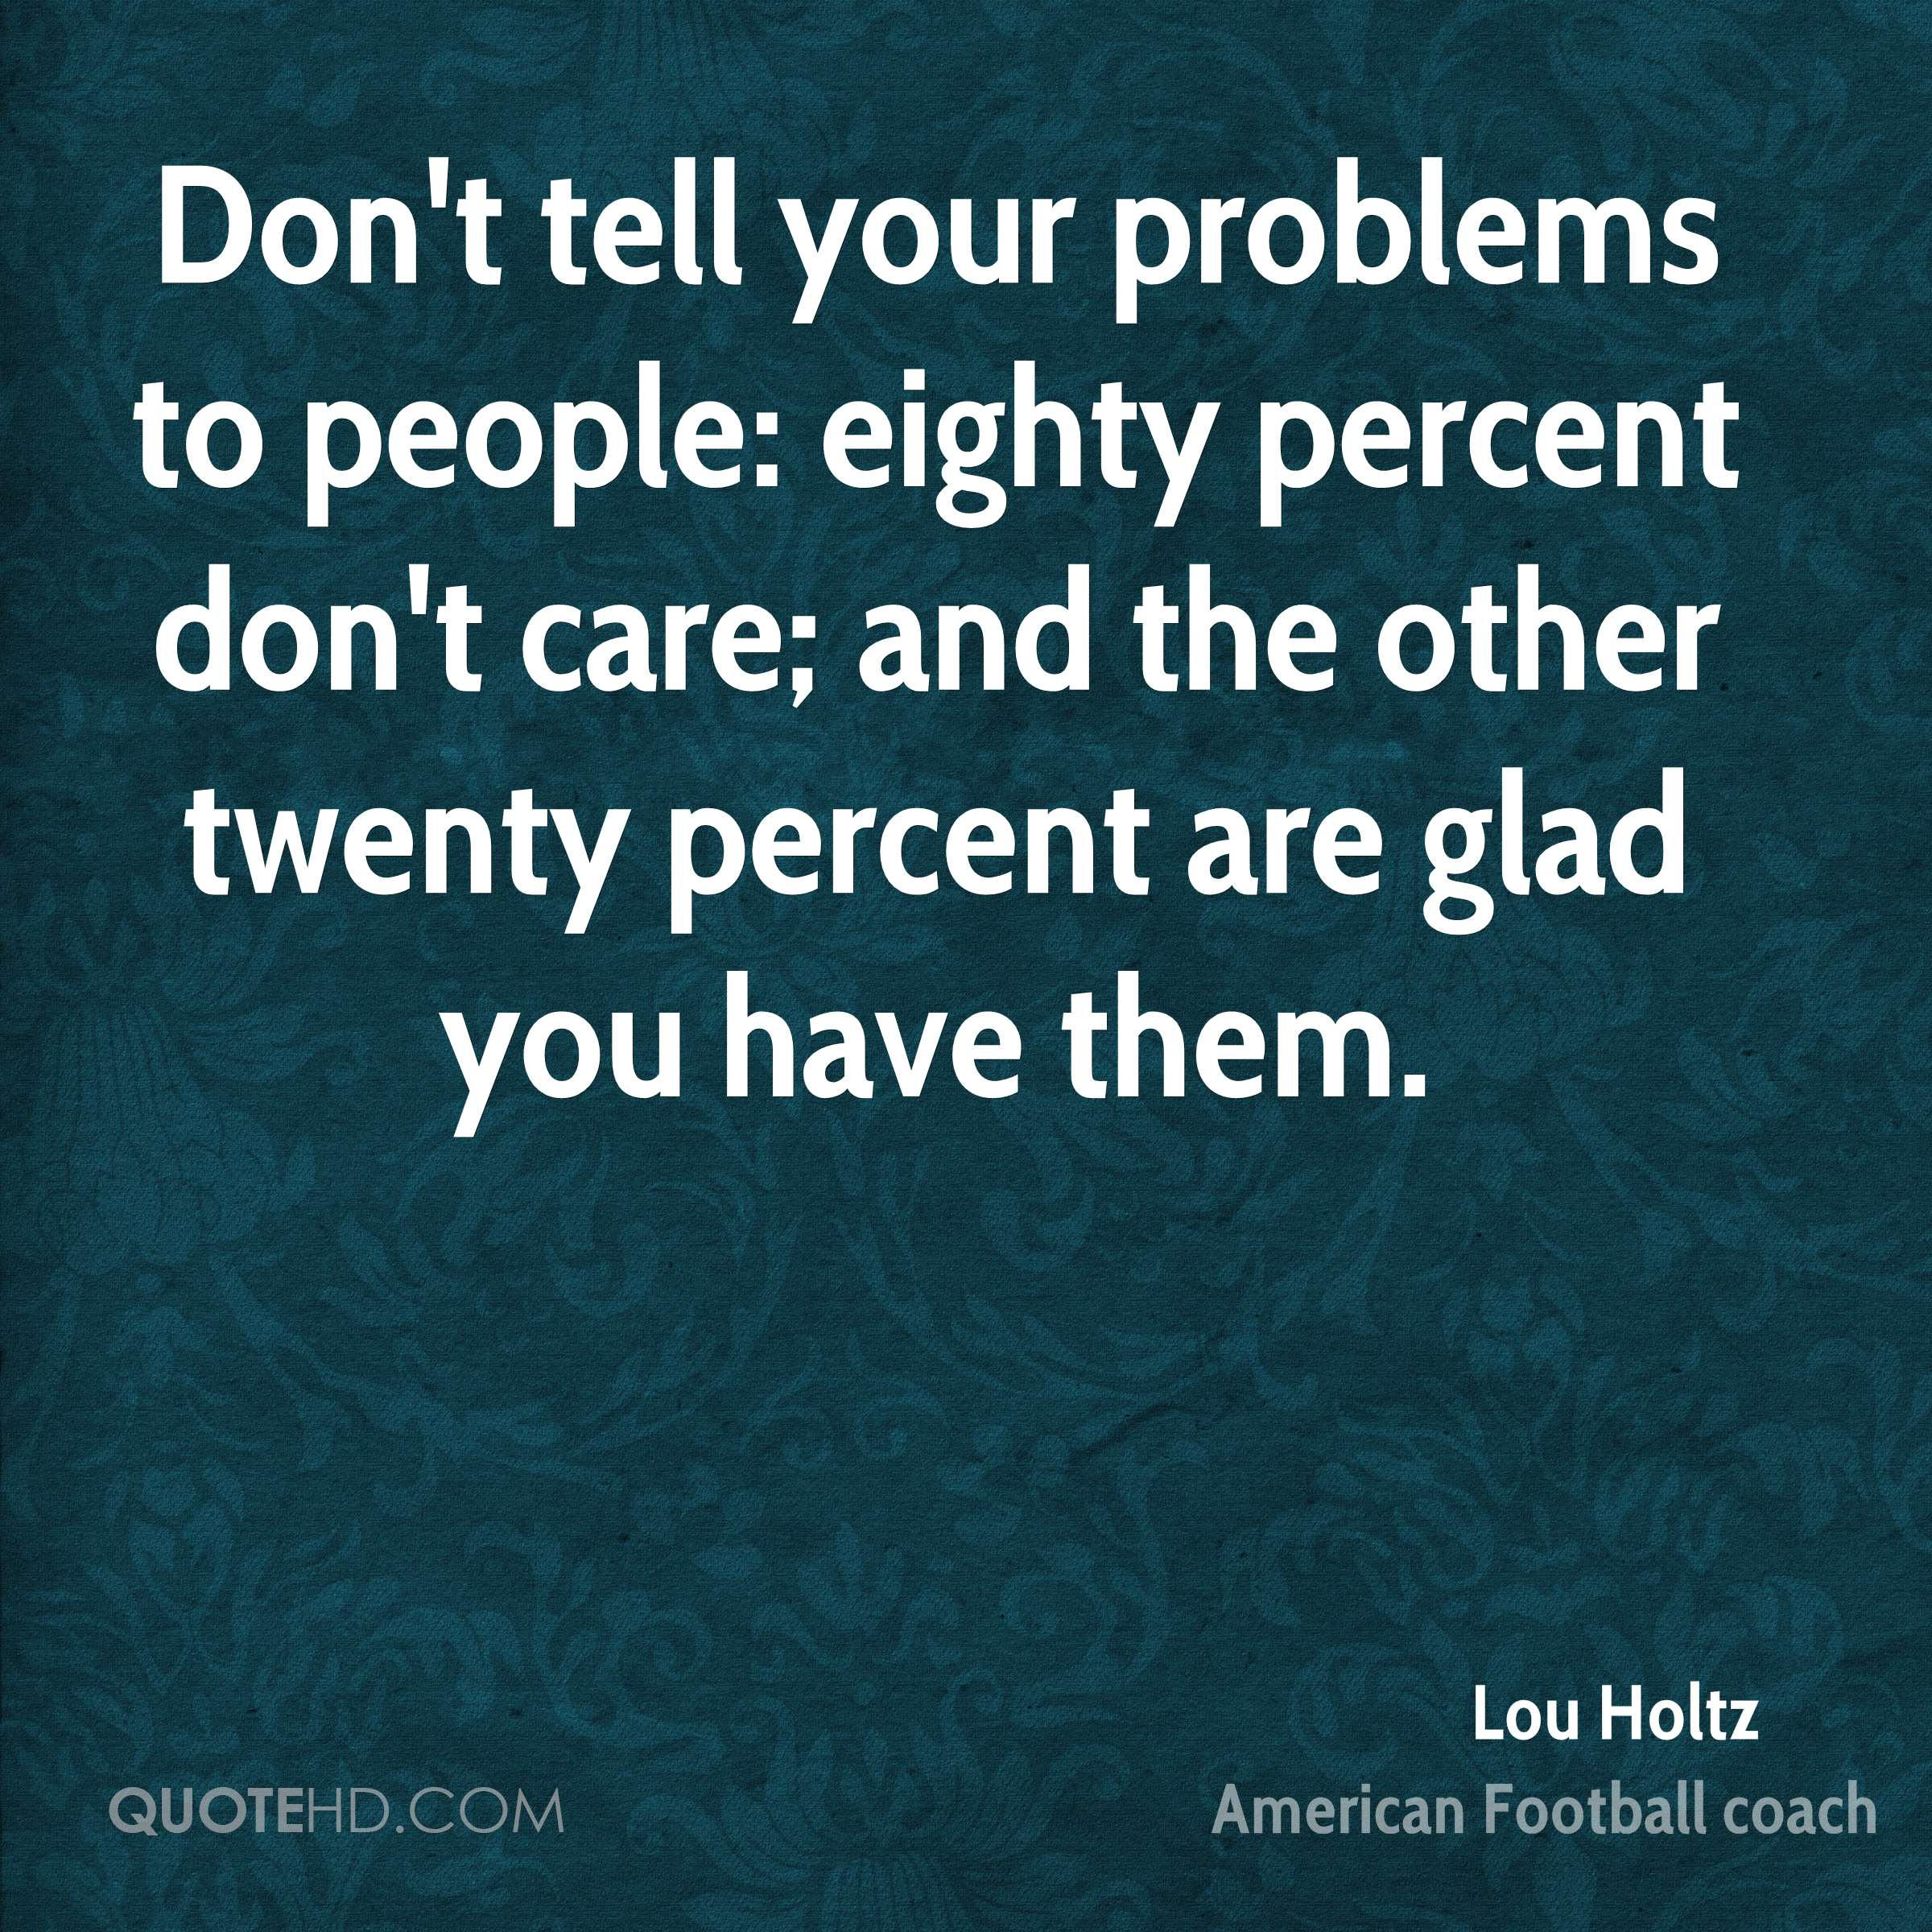 Don't tell your problems to people: eighty percent don't care; and the other twenty percent are glad you have them.